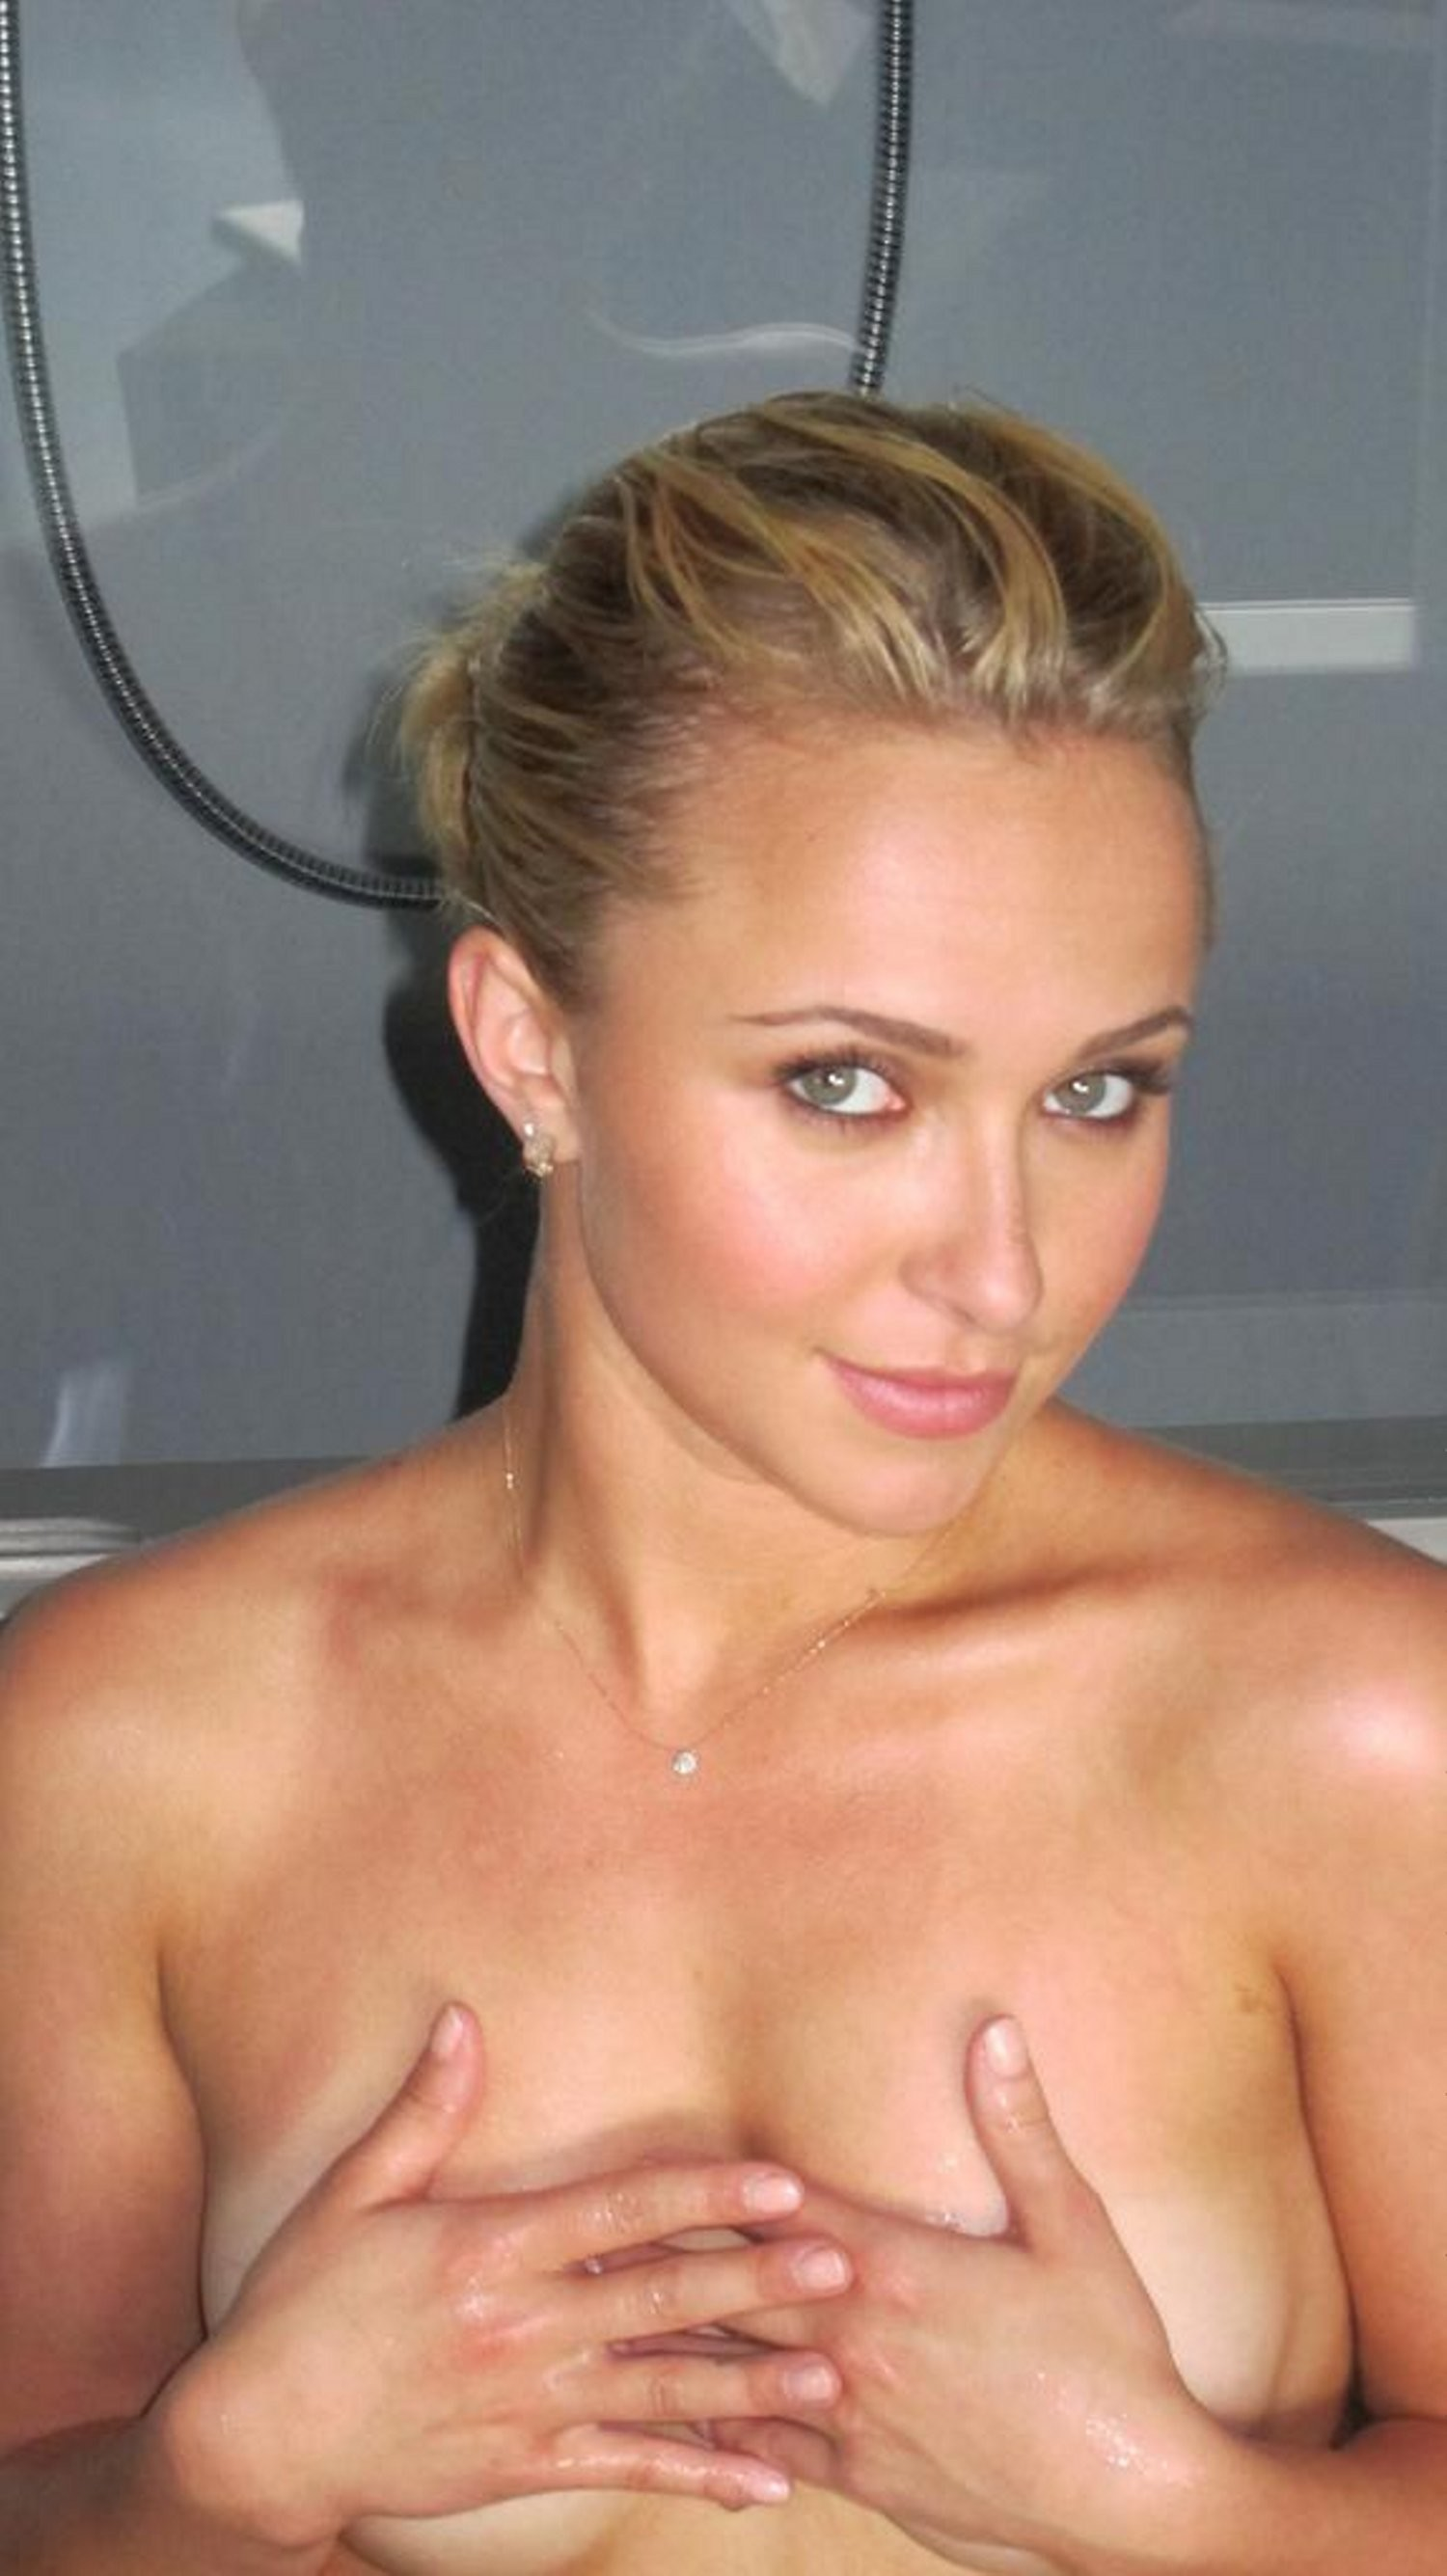 And hayden panettiere cleavage